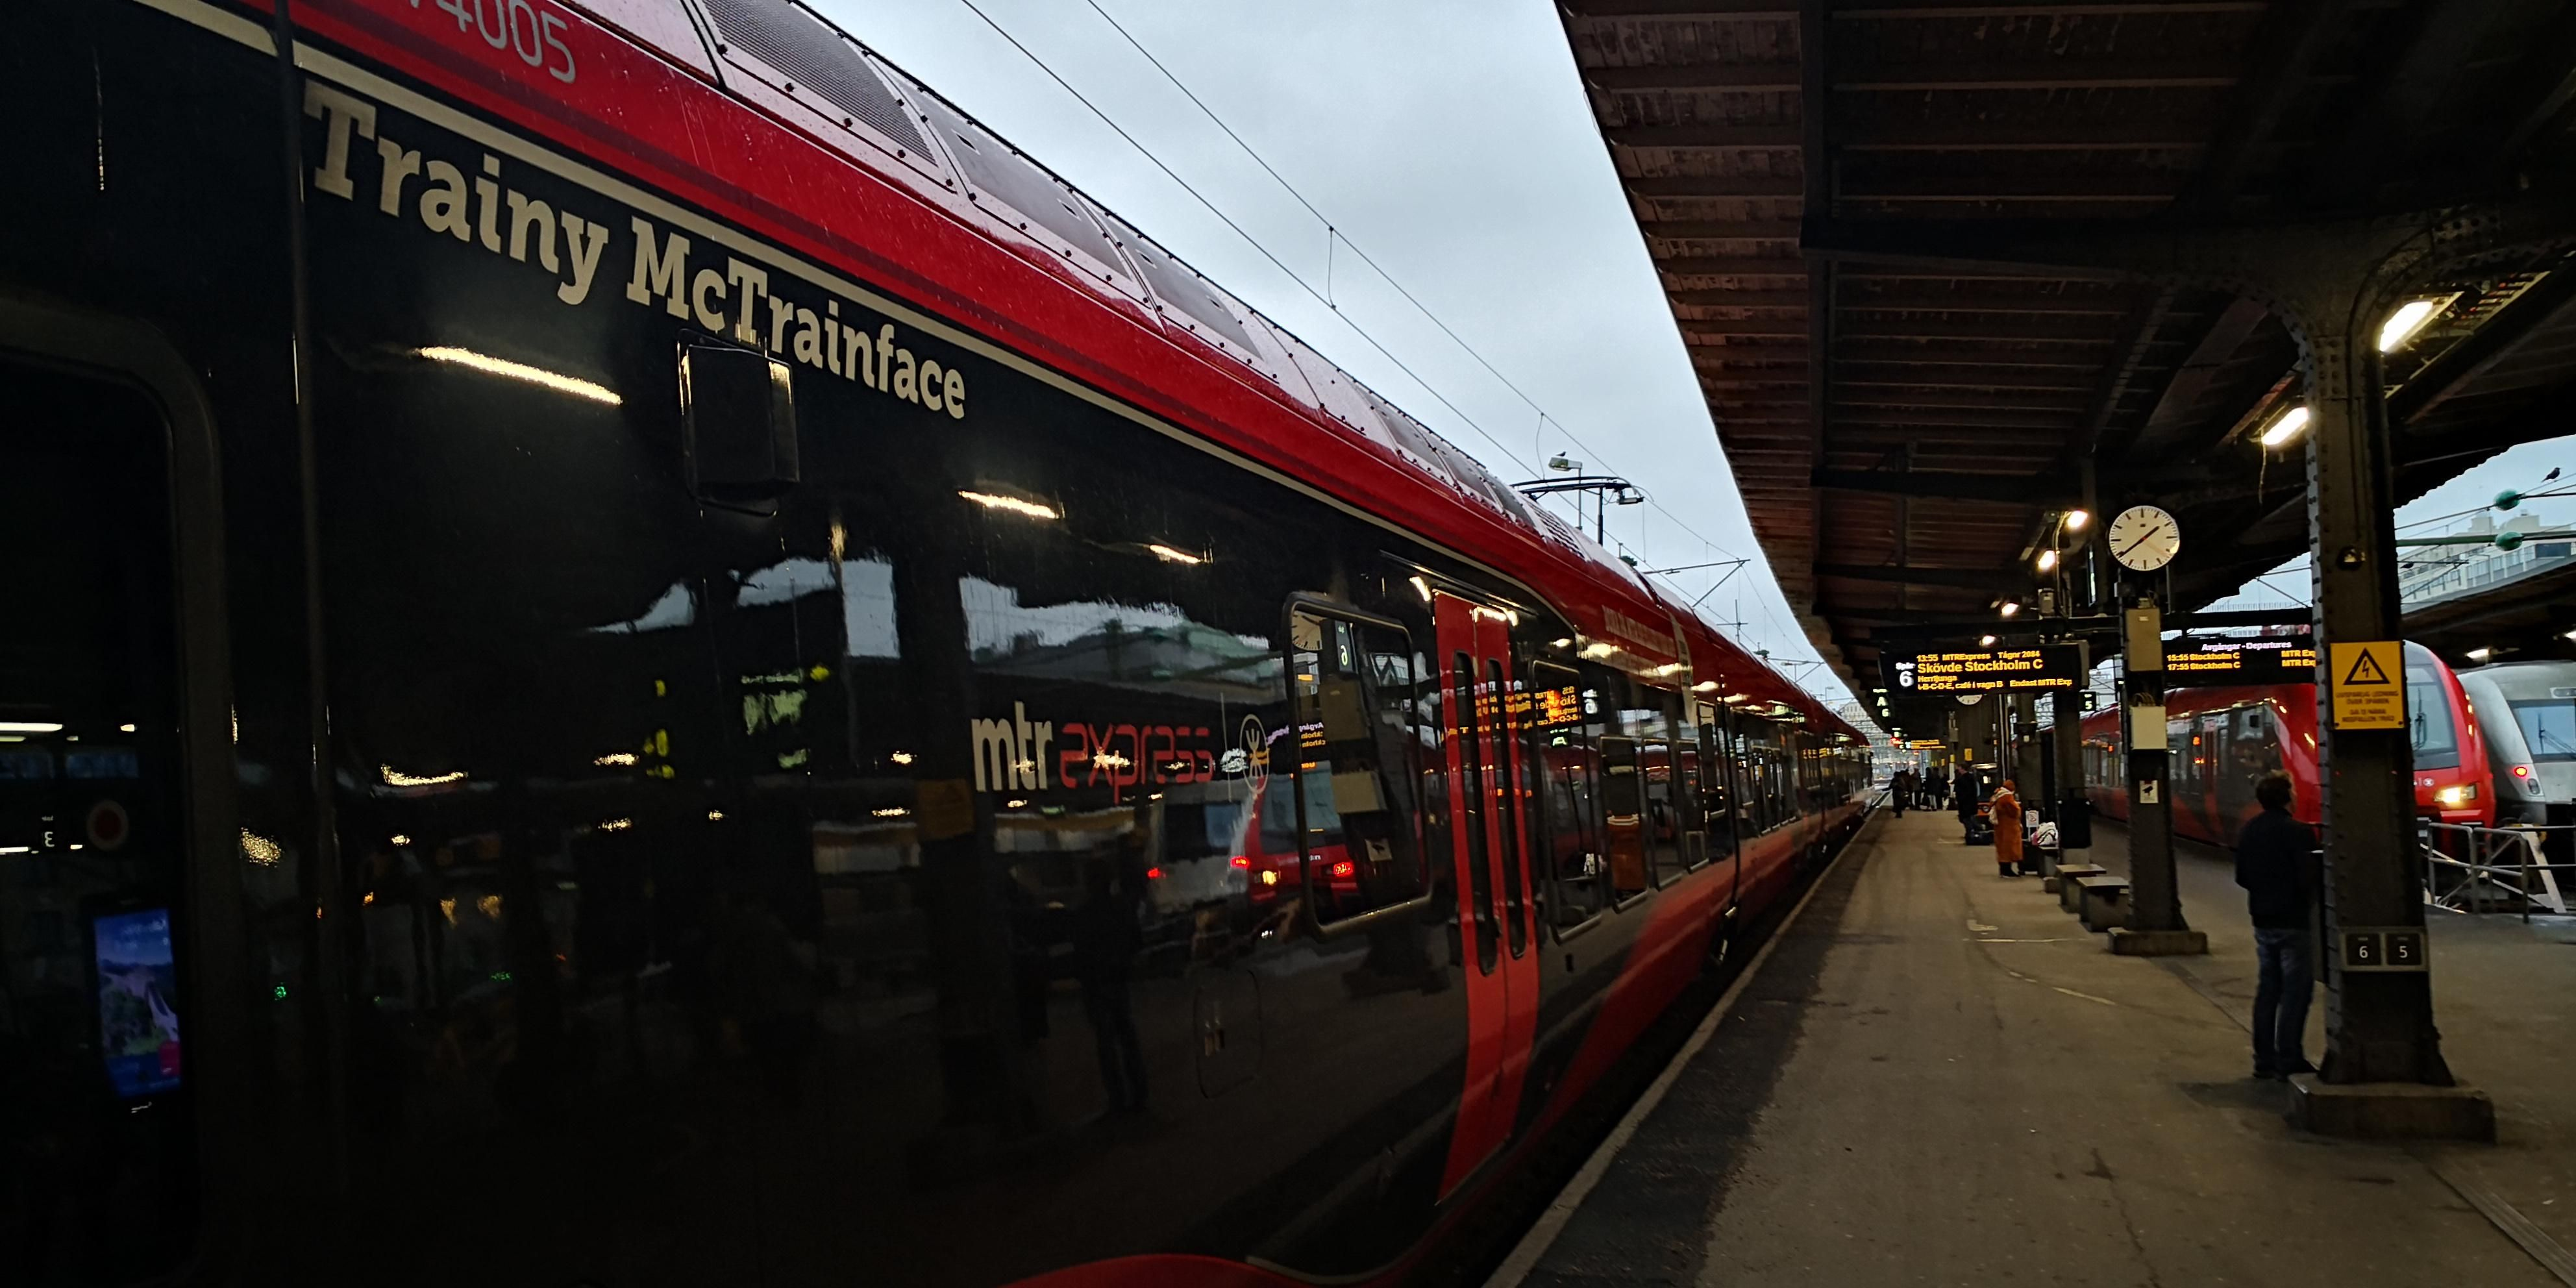 Say hello to Trainy McTrainface!